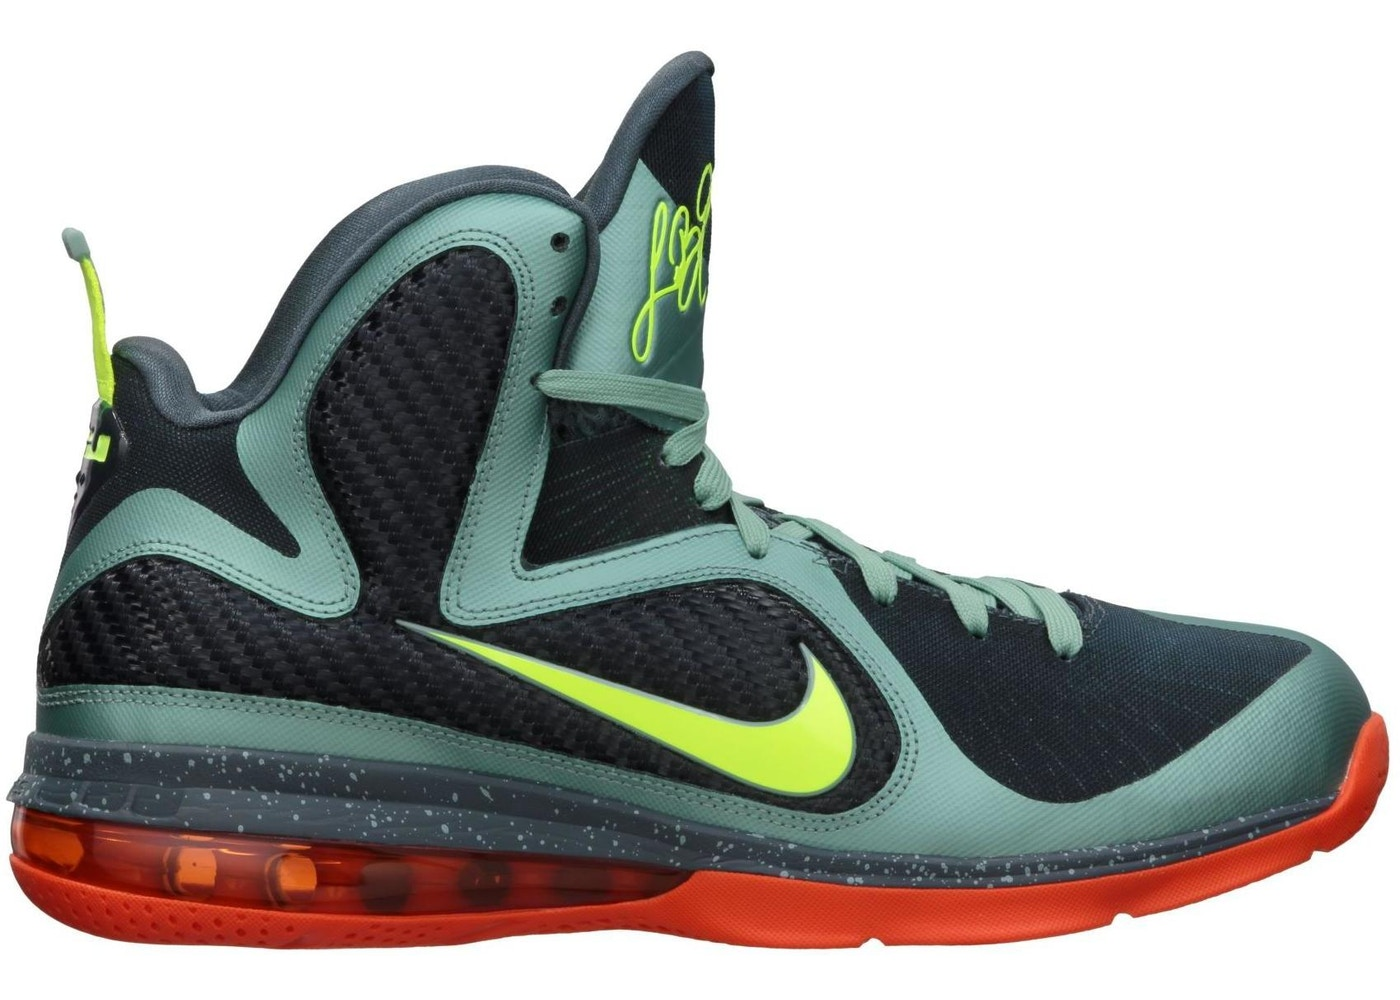 outlet store 8f198 2a4f9 LeBron 9 Cannon - 469764-004